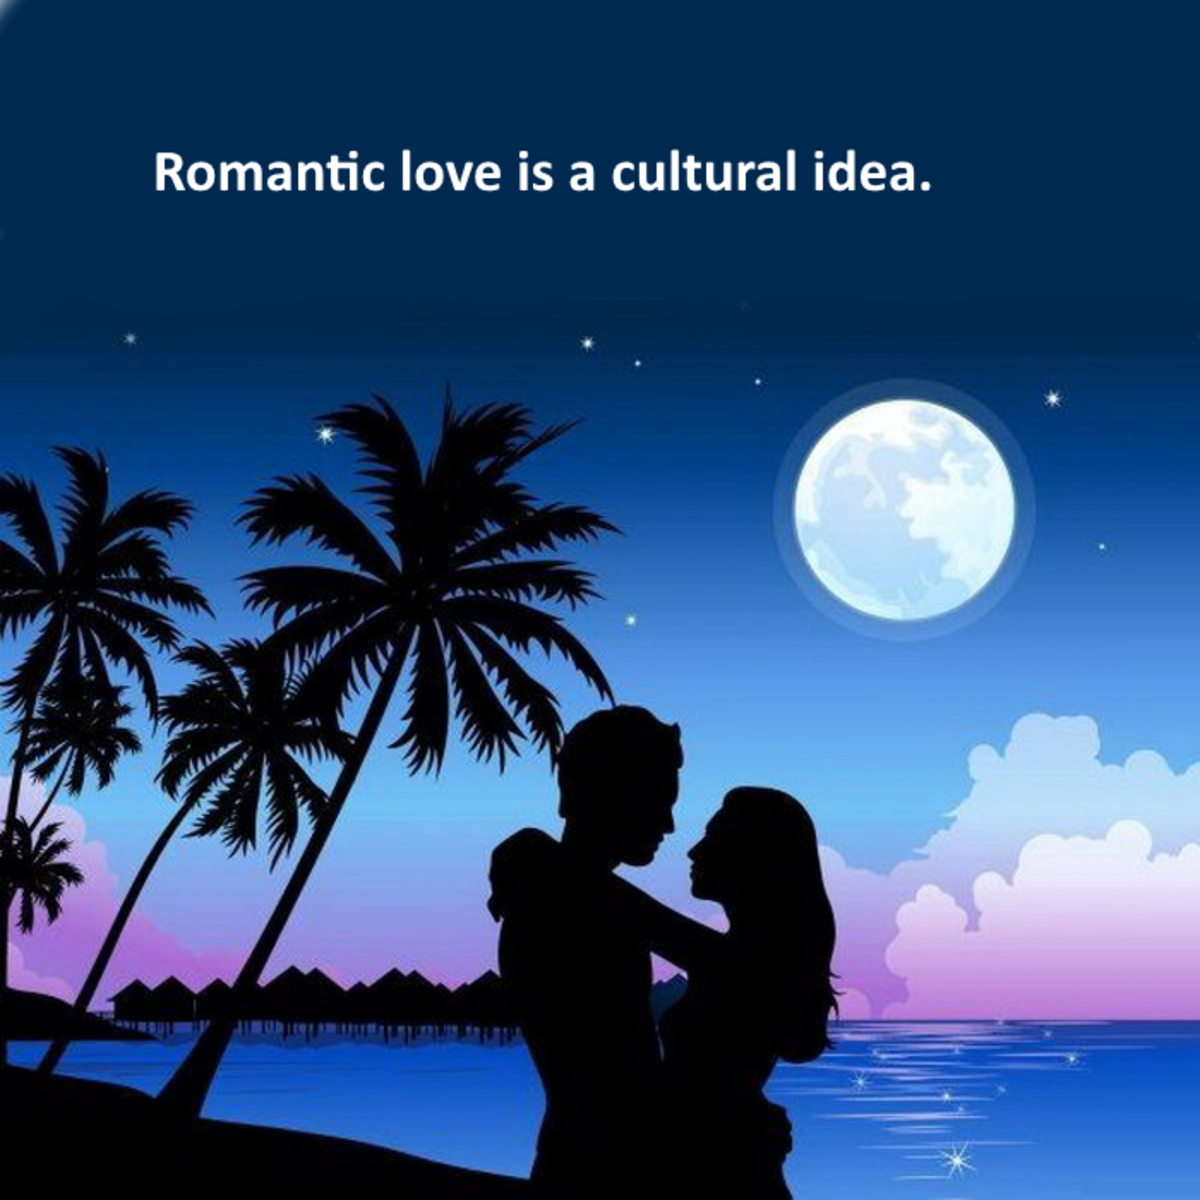 Romantic love is a cultural idea which has been much sought after in the 20th and 21st century.